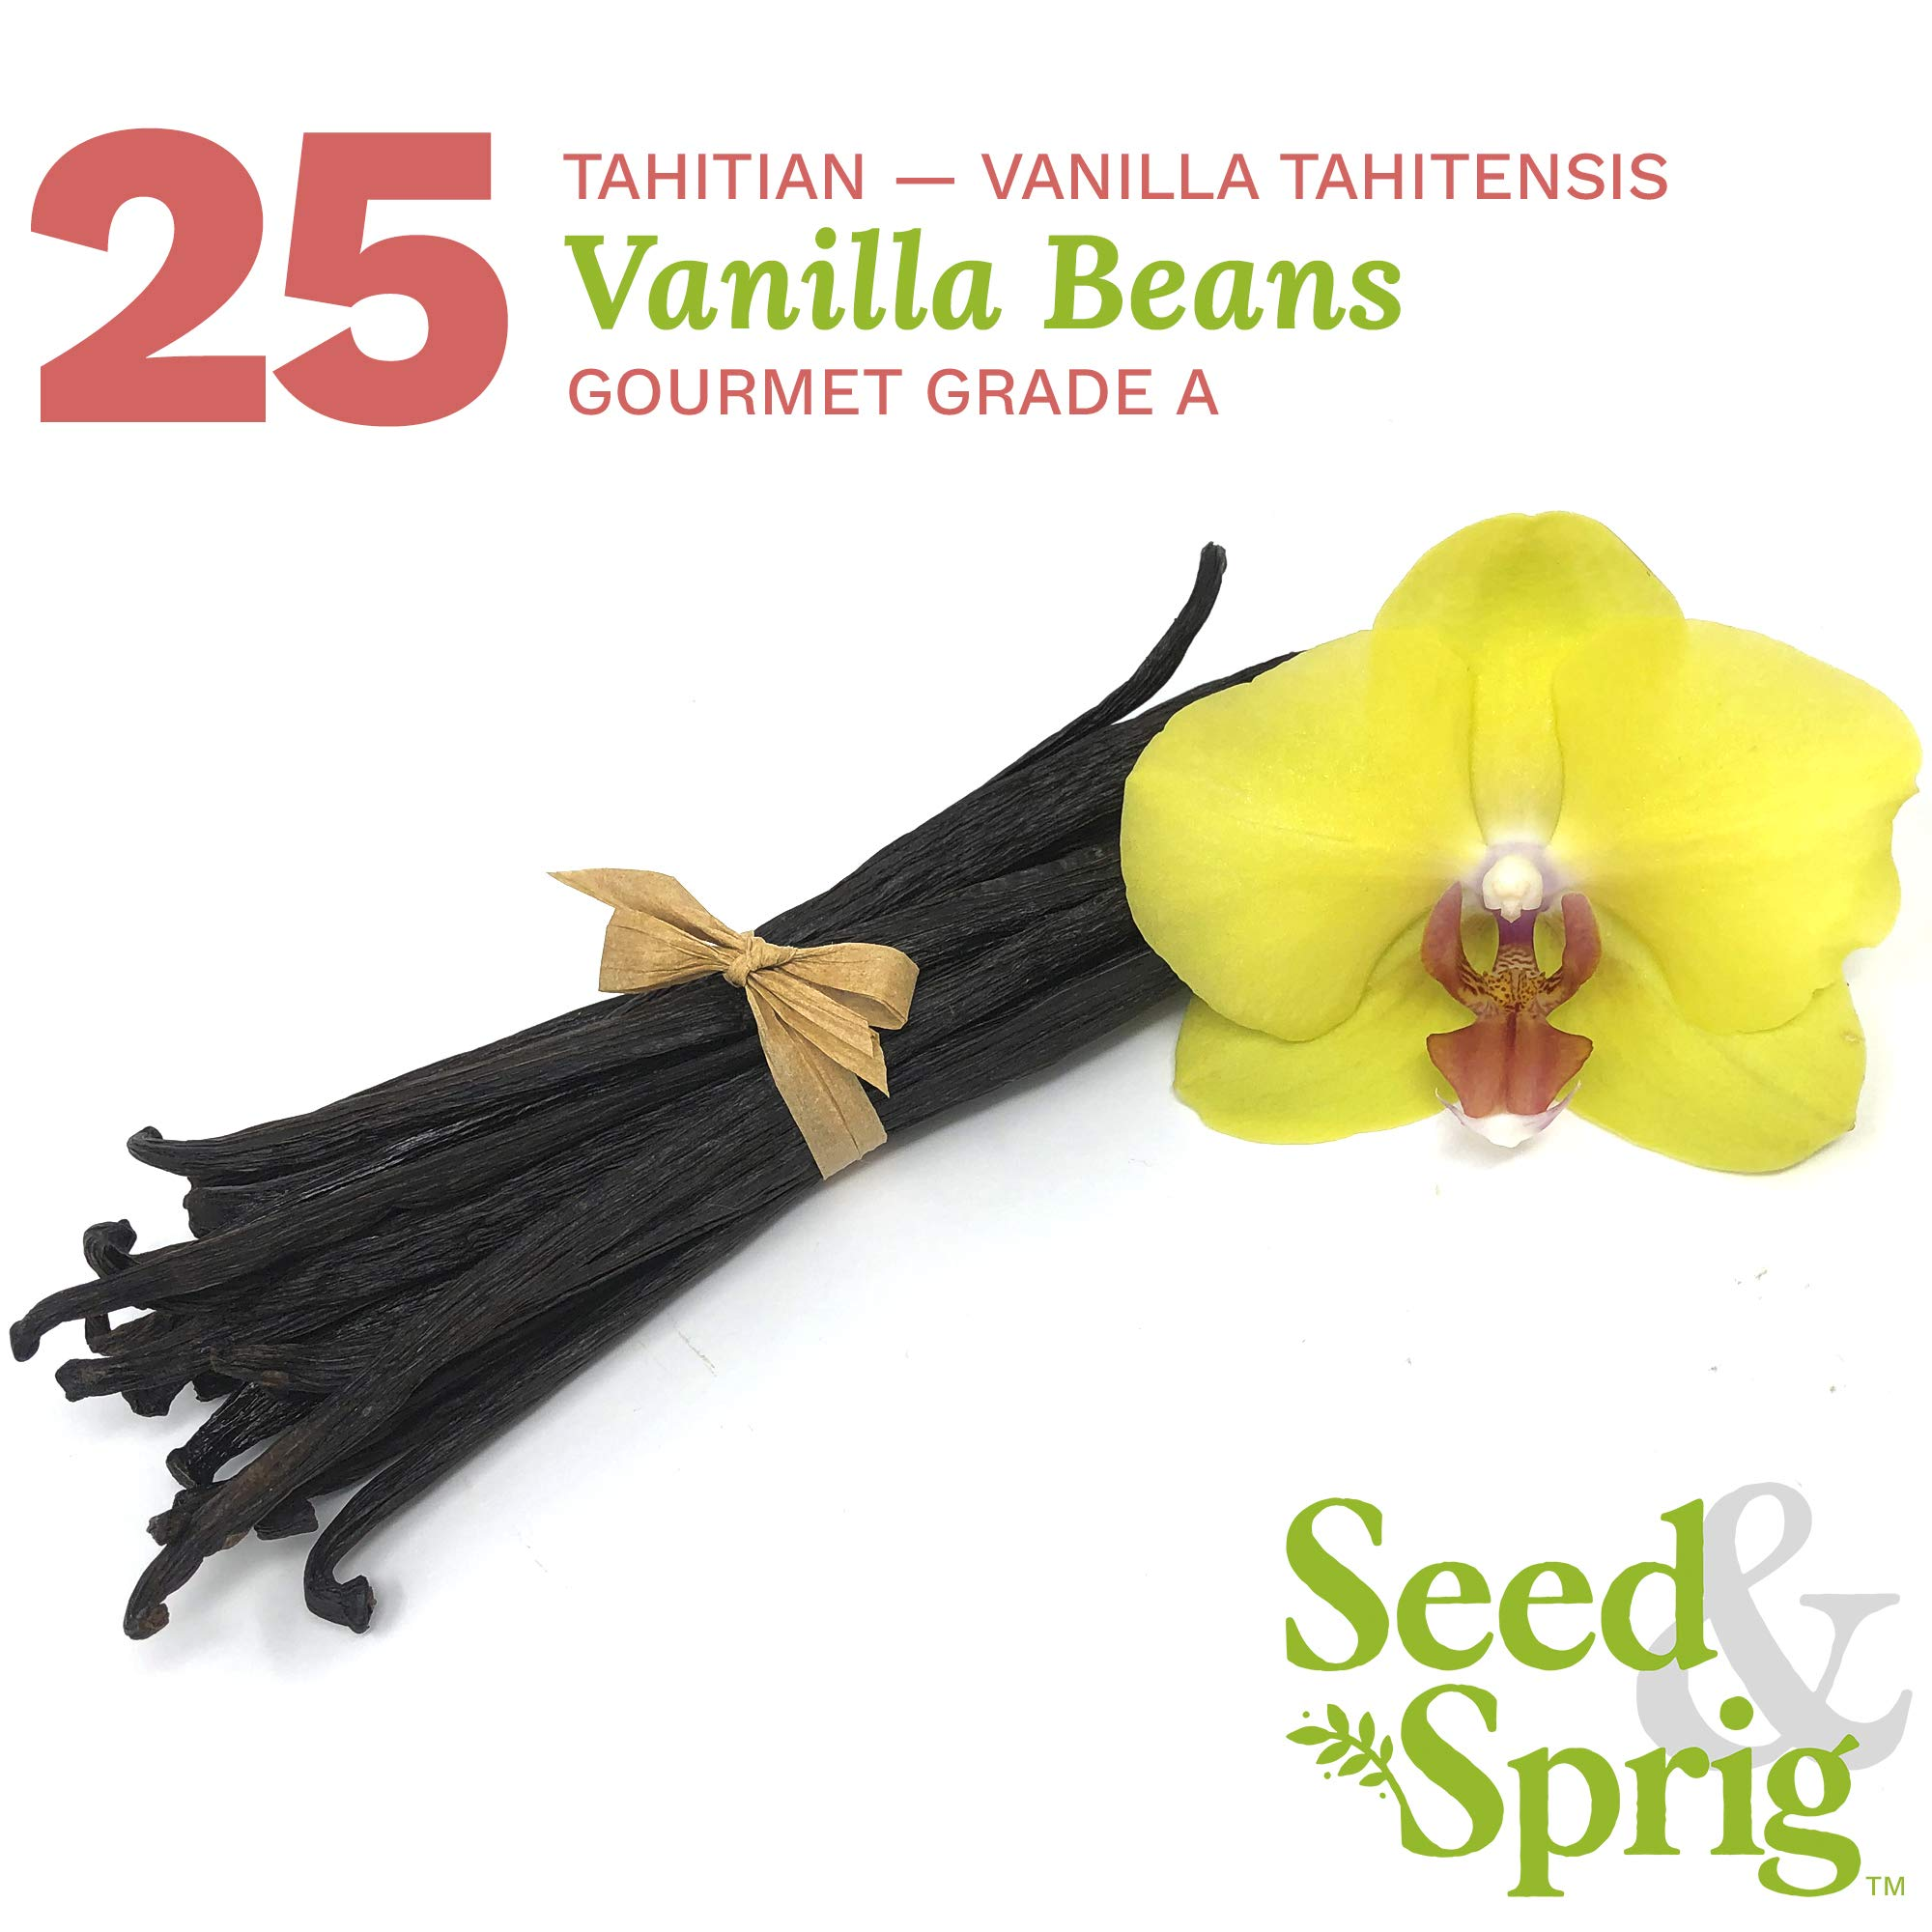 Seed & Sprig Tahitian Vanilla Beans | 25 Pack | Bulk Whole Vanilla Pods & Seeds for Baking, Coffee, Brewing, Cooking | Gourmet Grade A | 5.5+ inches Non-GMO Long, Plump, Moist by Seed & Sprig